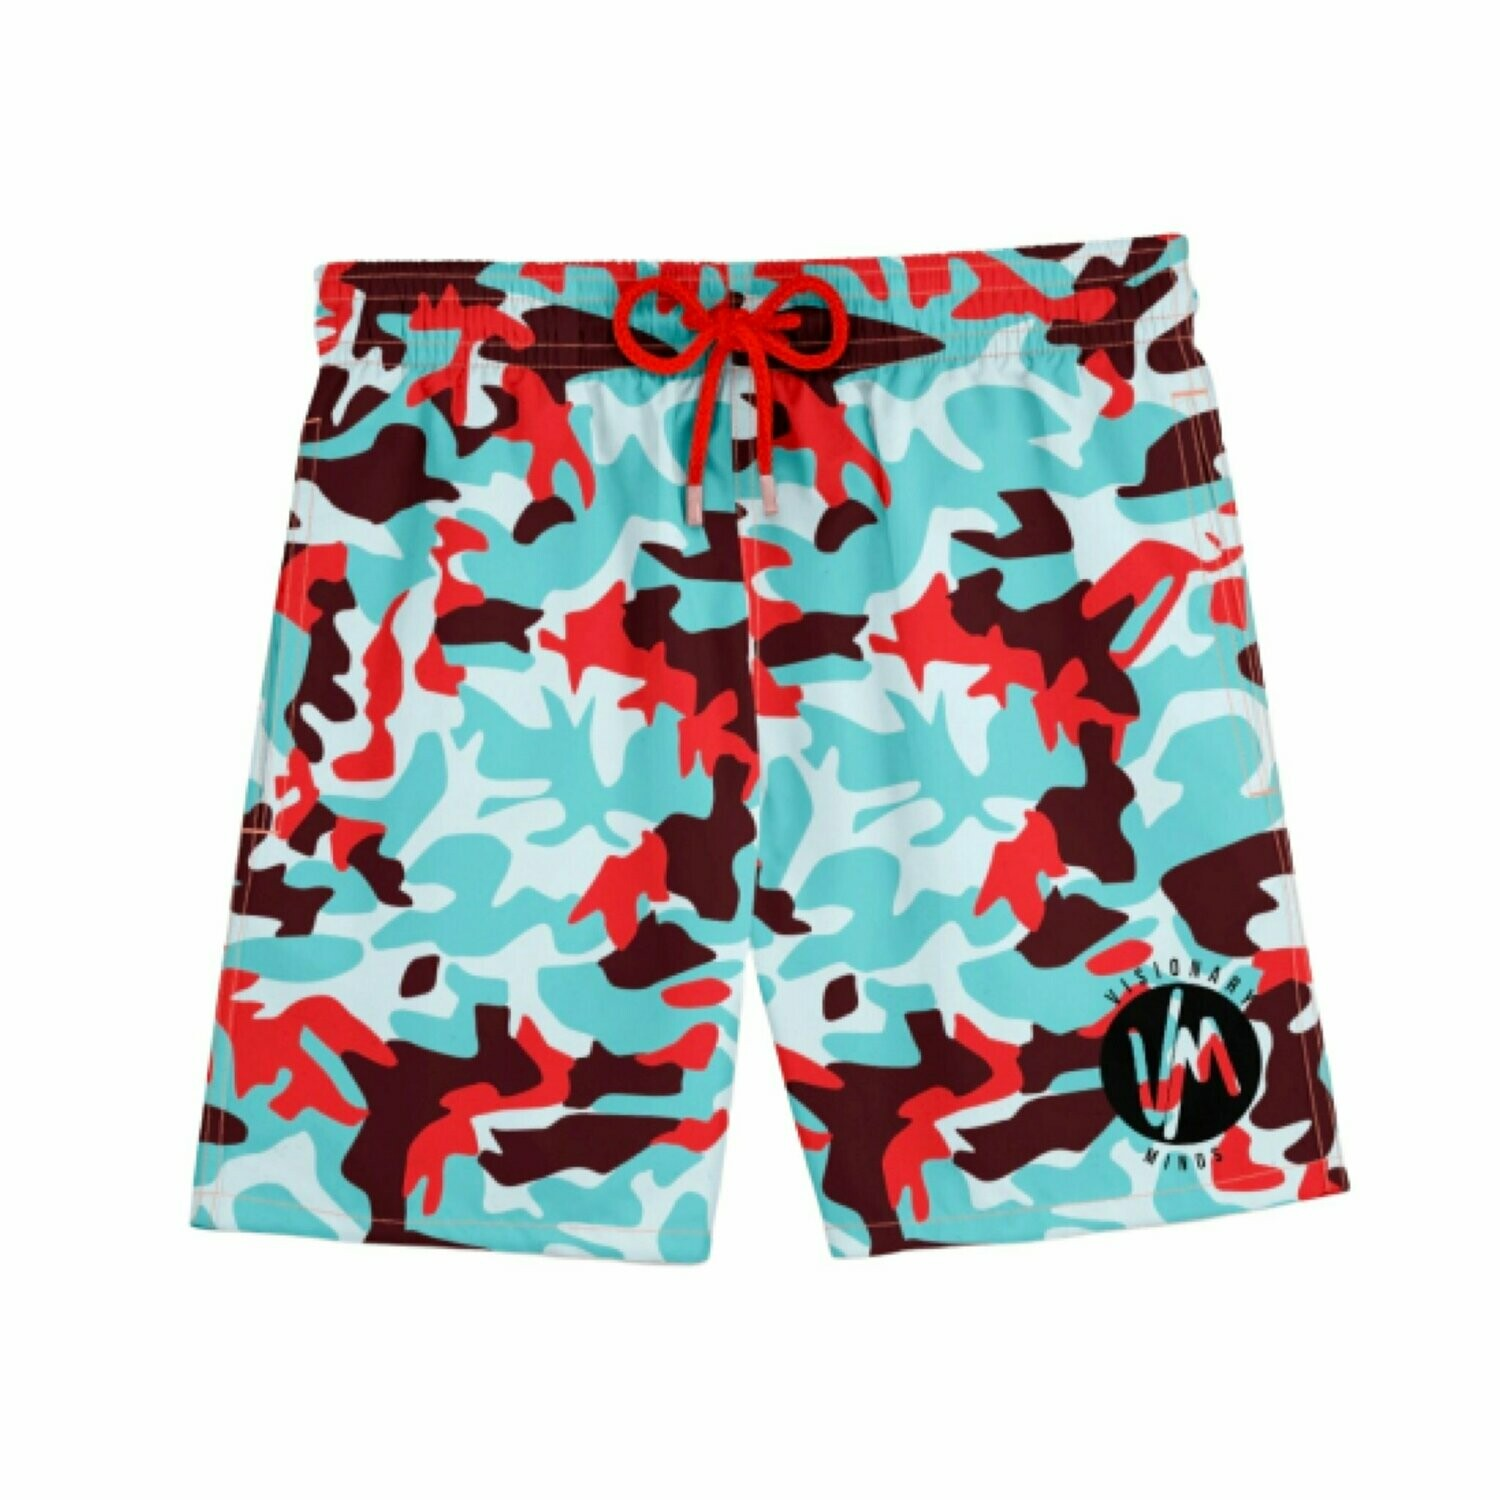 VM - Militia Bluered Short